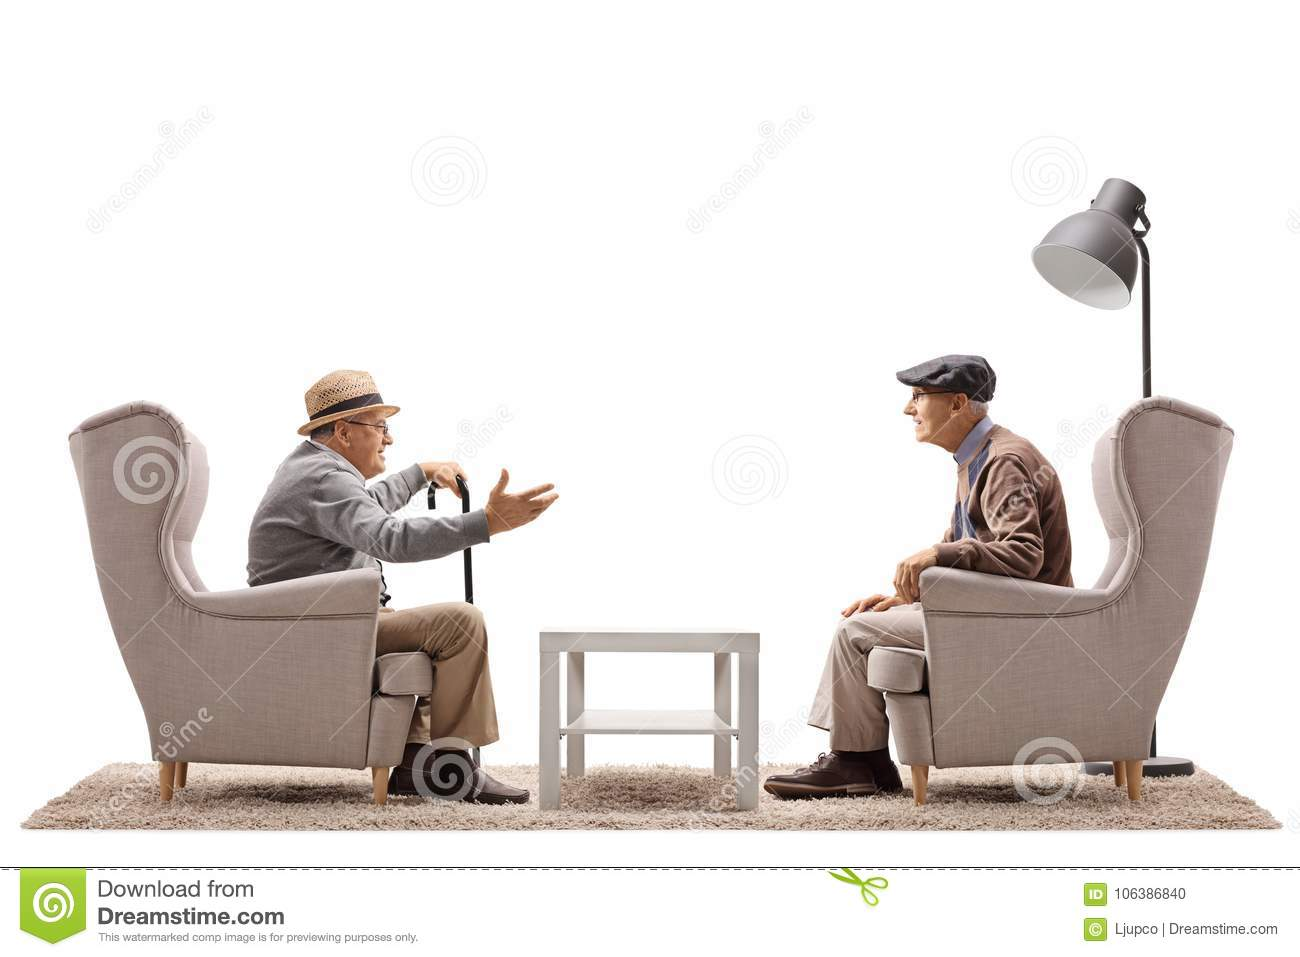 Two elderly men seated in armchairs having a conversation